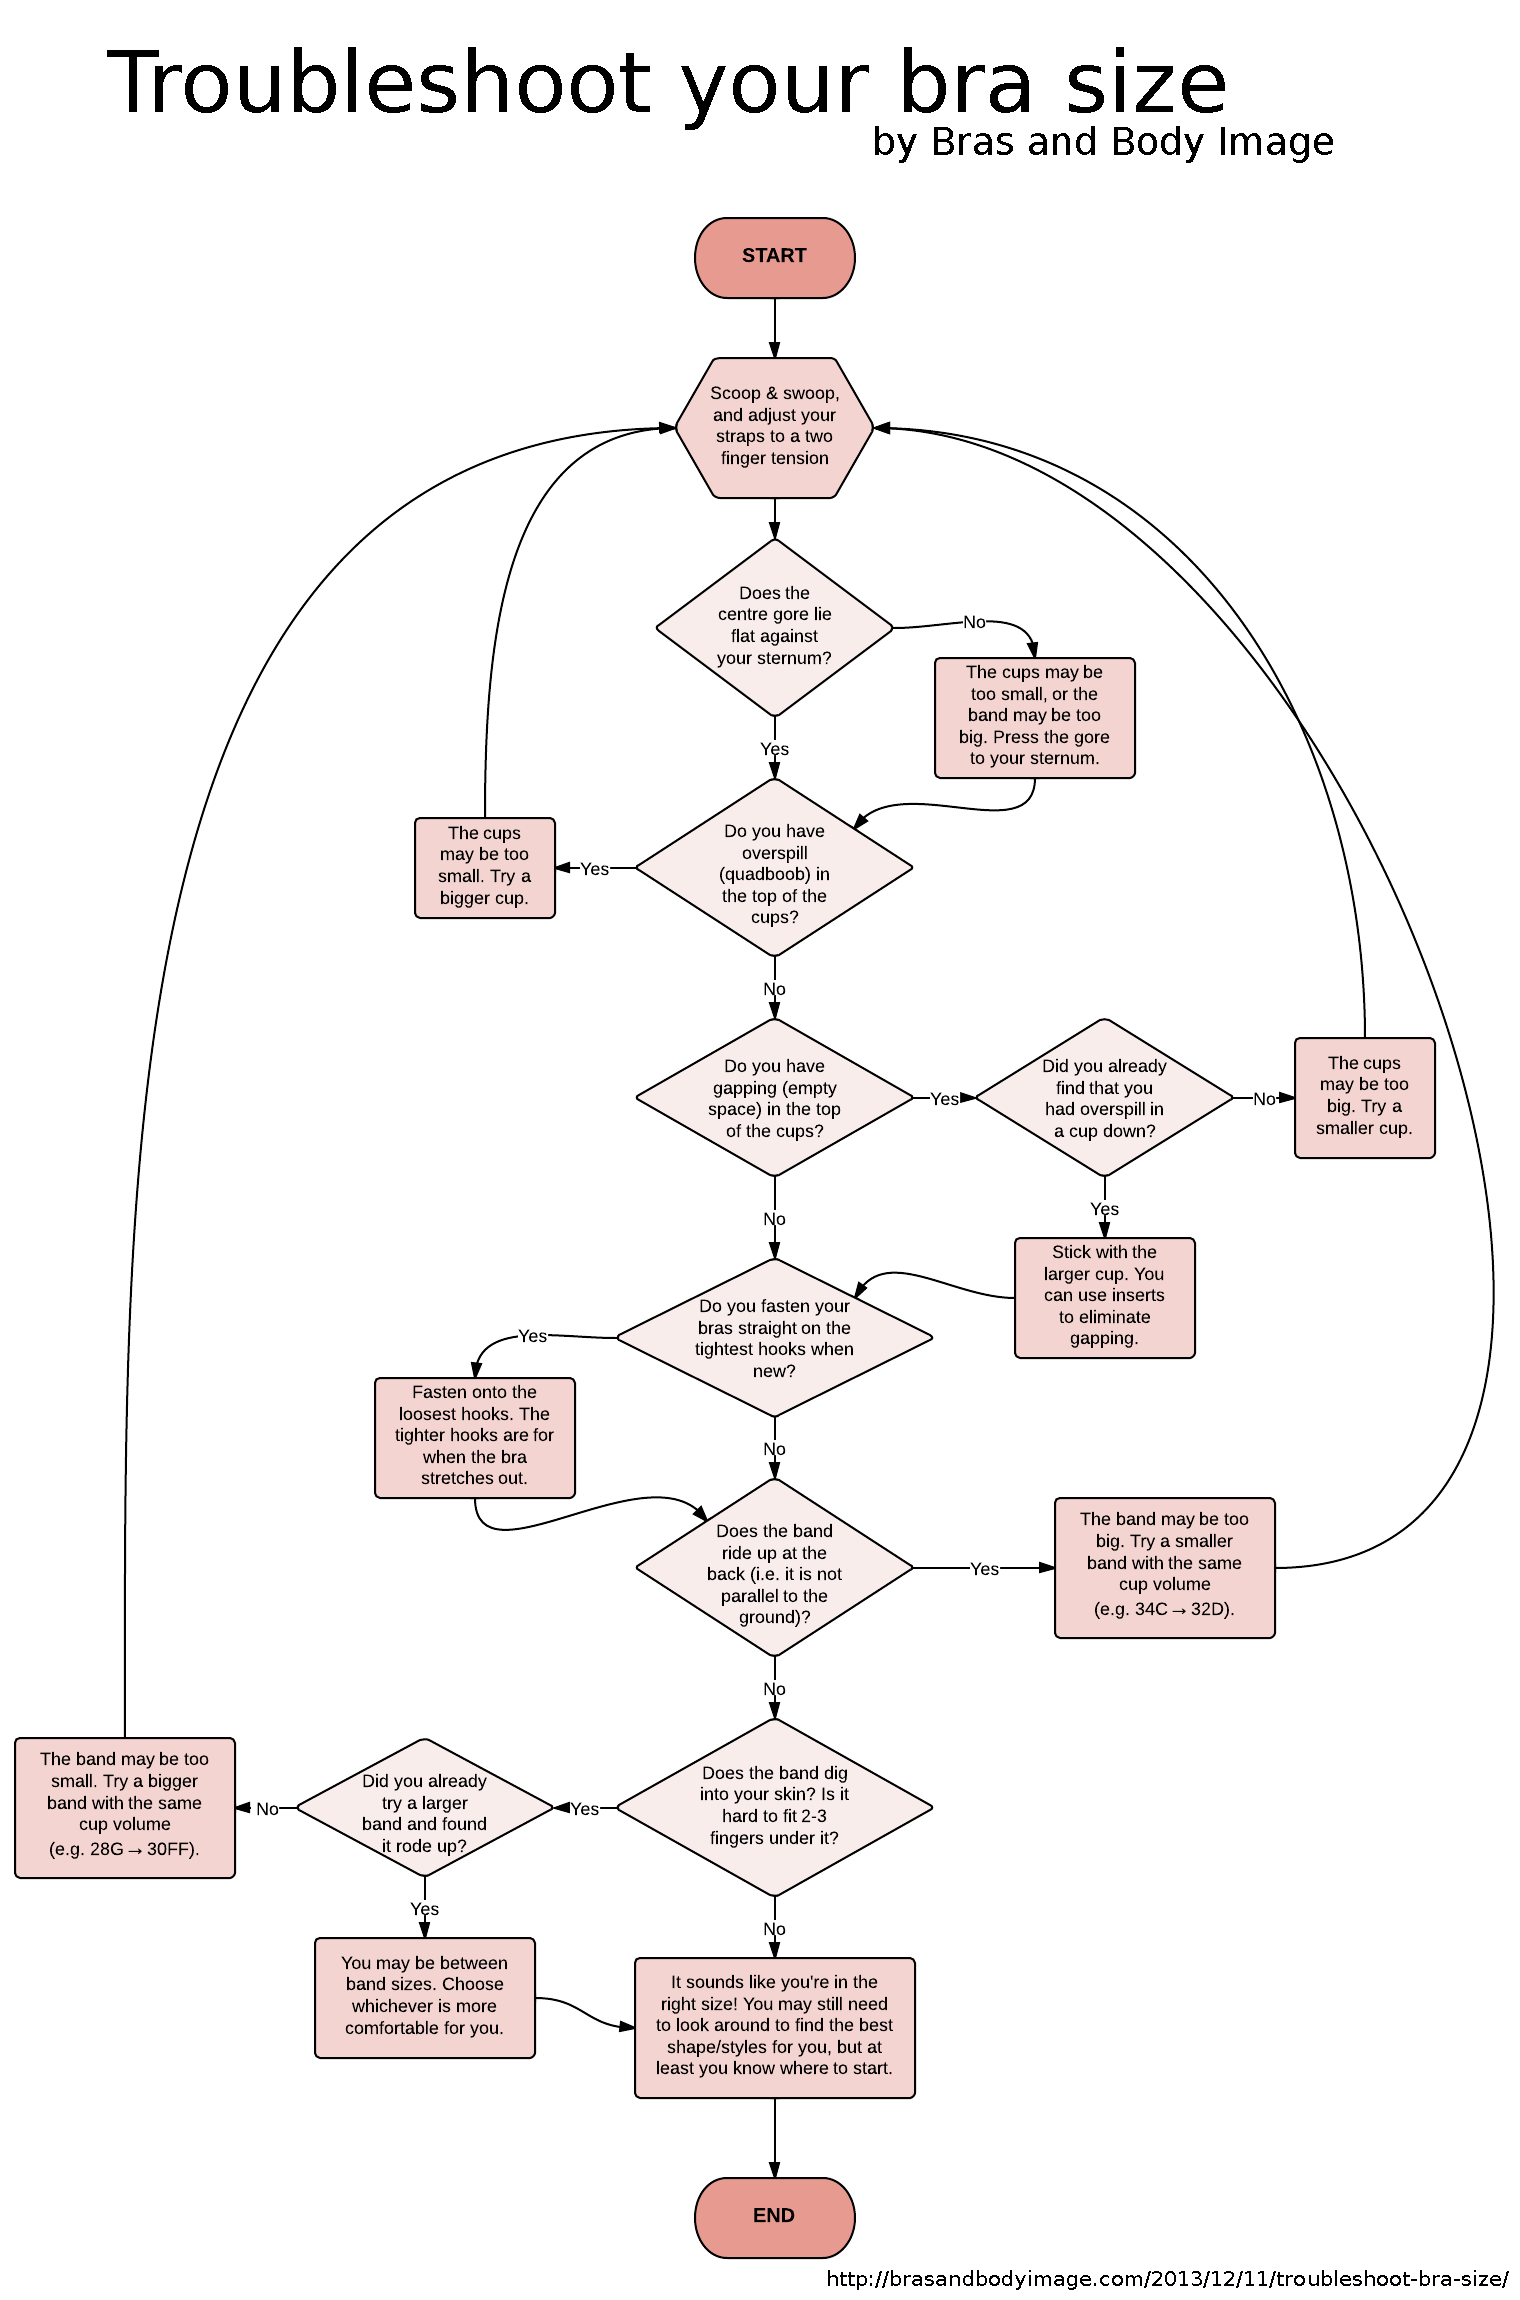 bra fit flow chart mincludes troubleshooting tips for breast projection and underwire sizing [ 1520 x 2300 Pixel ]